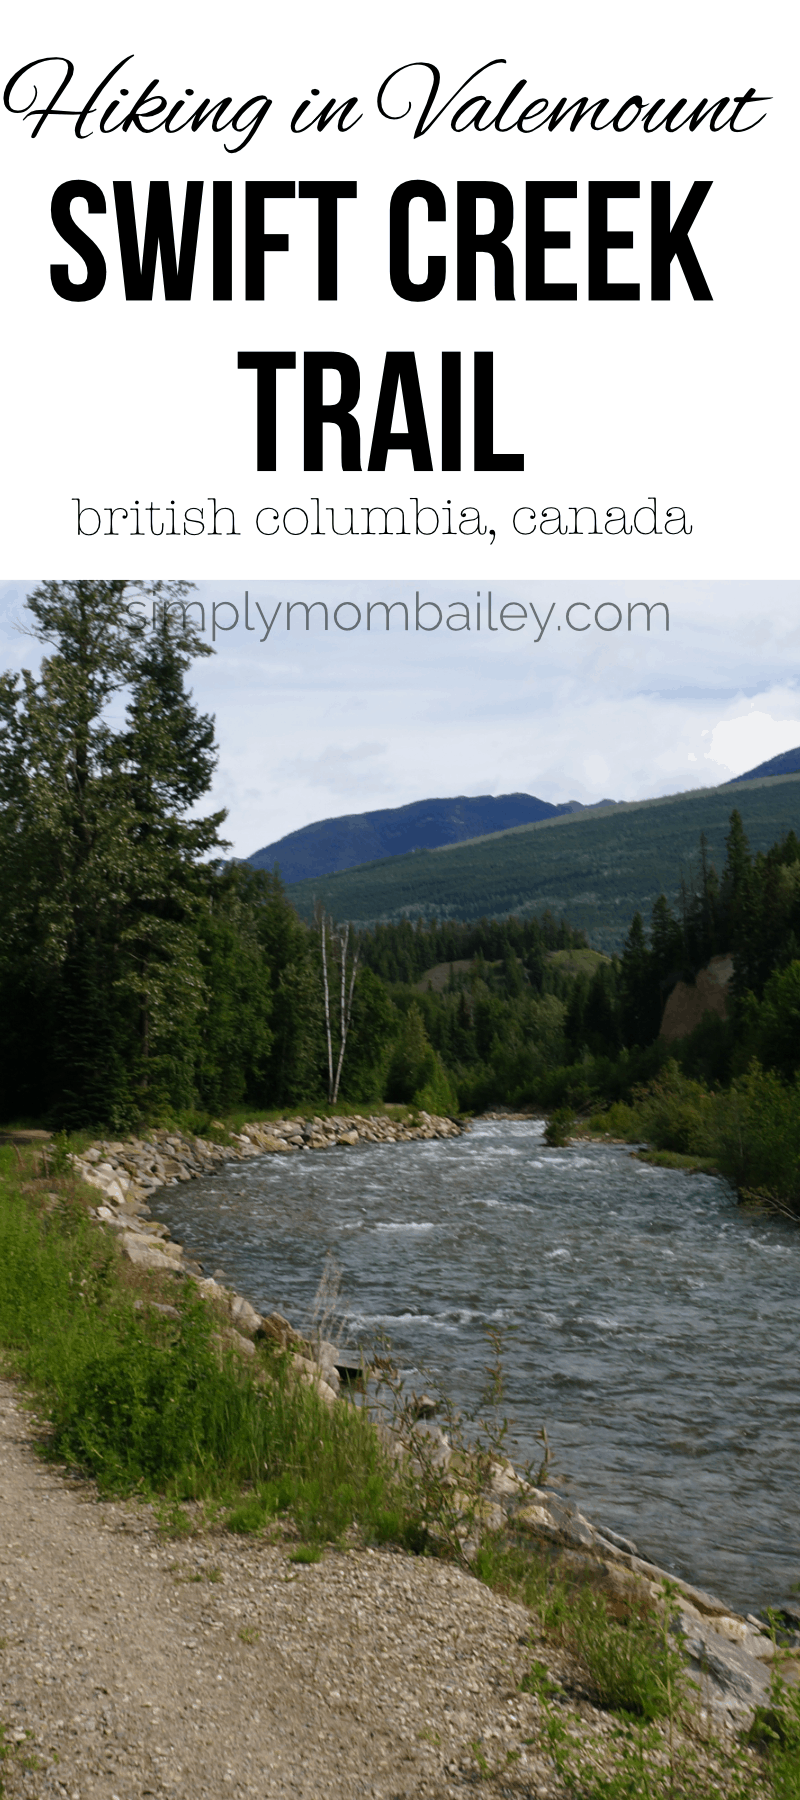 Looking for a great adventure in the Rockies? Swift Creek Trail is an ambitious 10km hike in the township of Valemount, British Columbia #travelCanada #Canada #hikingCanada #hikingtrips #hikingwithkids #exploreBC #travelBC #roadtrip #getoutside #hikes